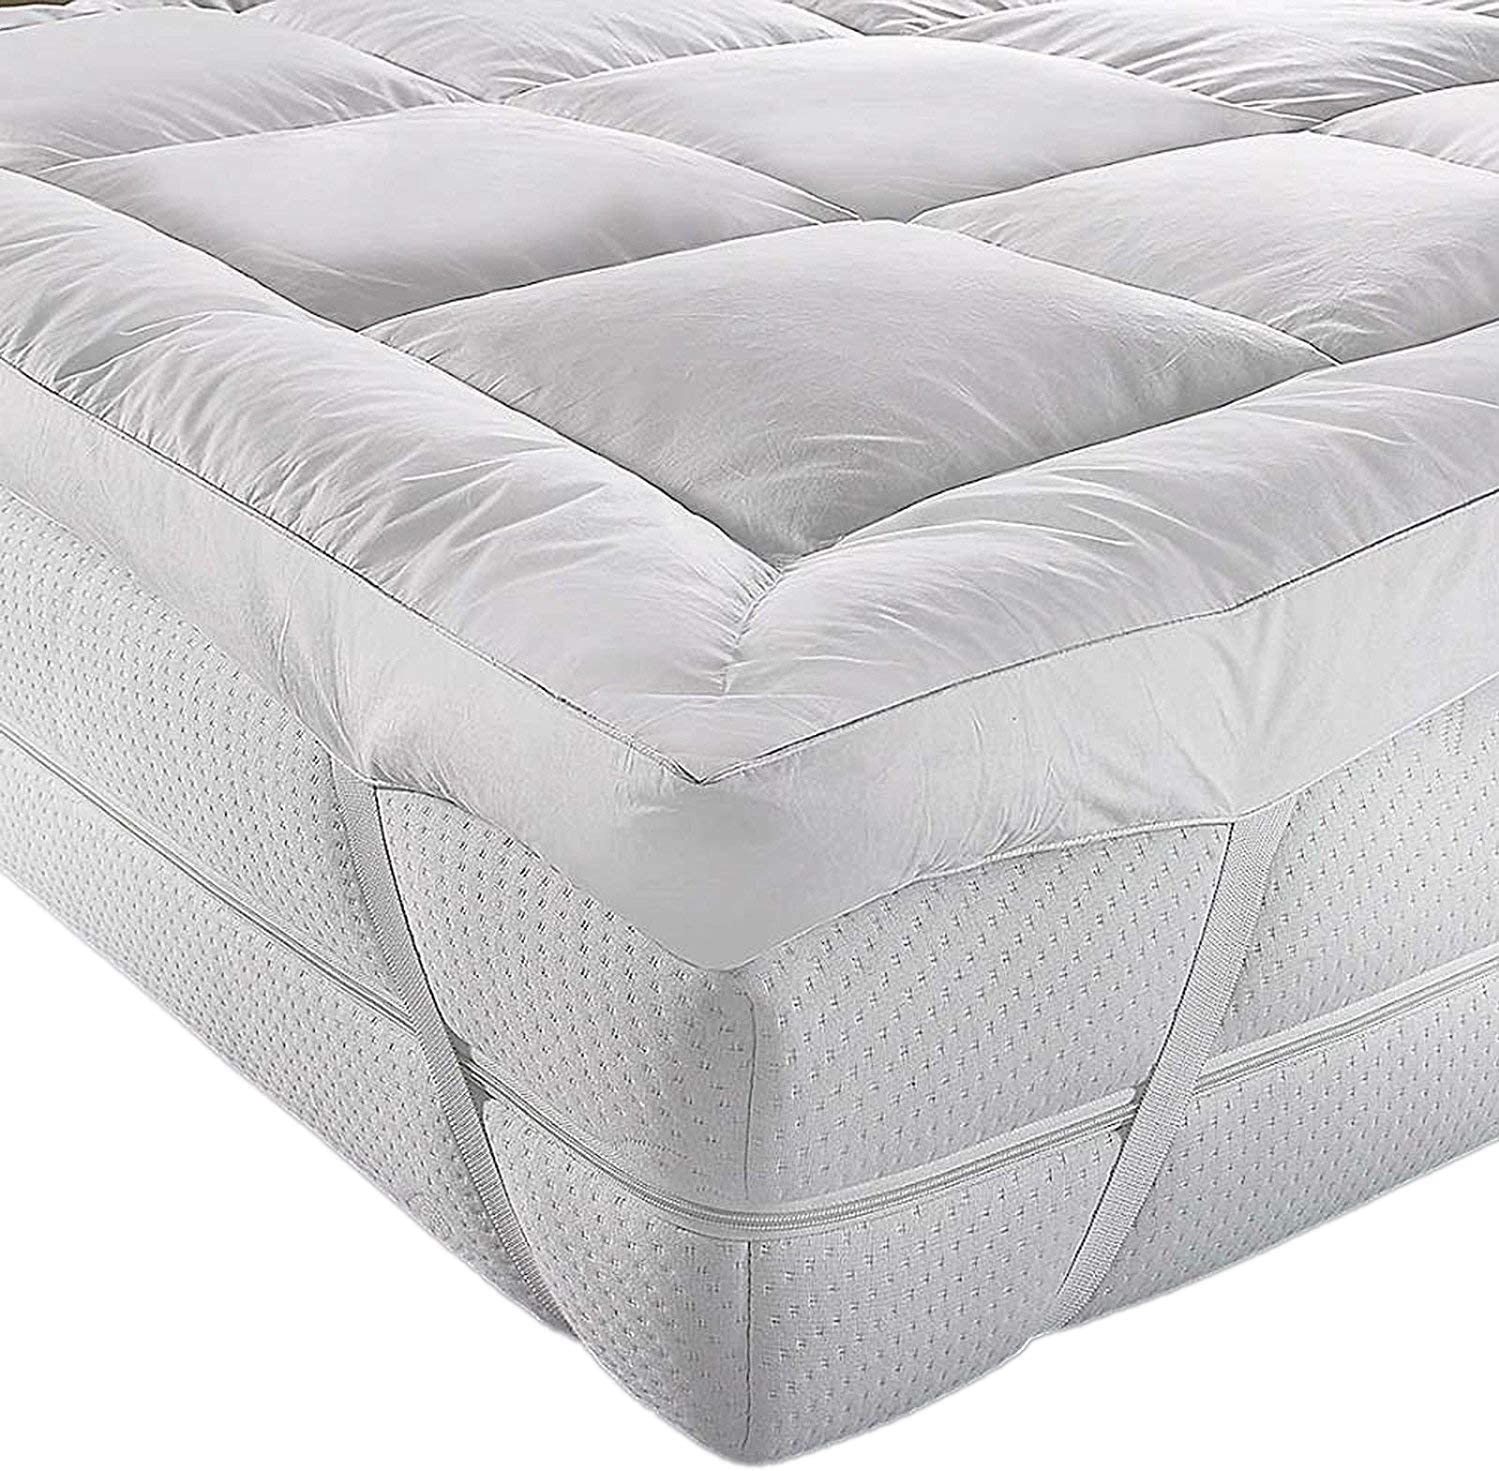 2 X HOTEL QUALITY QUILTED ANTI ALLERGENIC 4 FOOT MATTRESS PROTECTOR 122x190CM